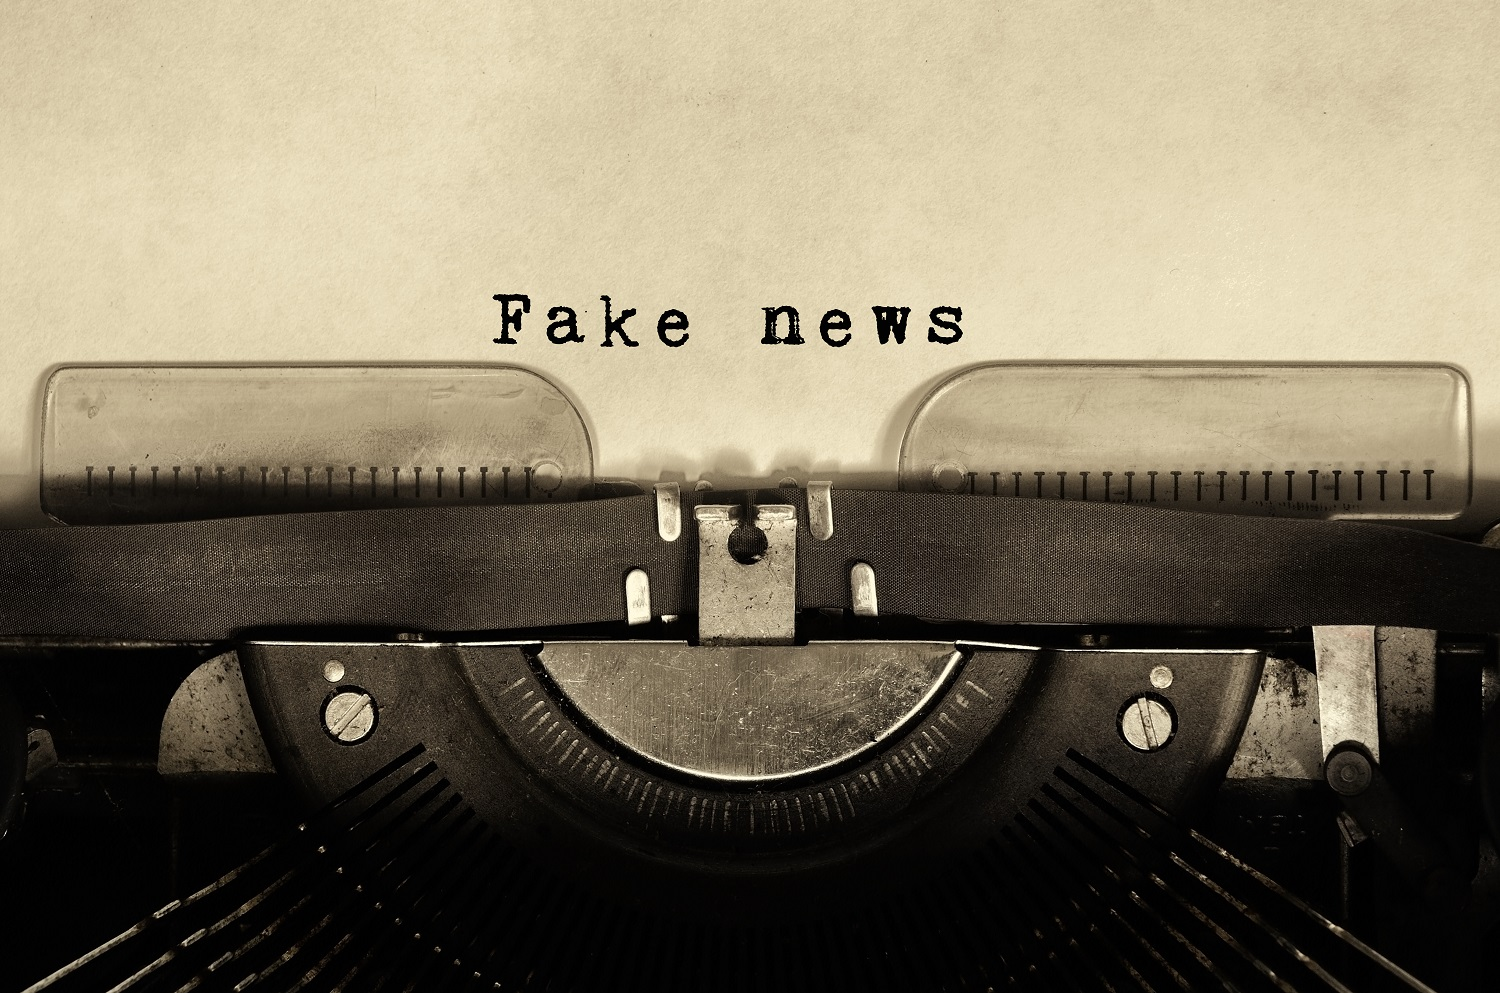 Fake news has always existed, but quality journalism has a history of survival